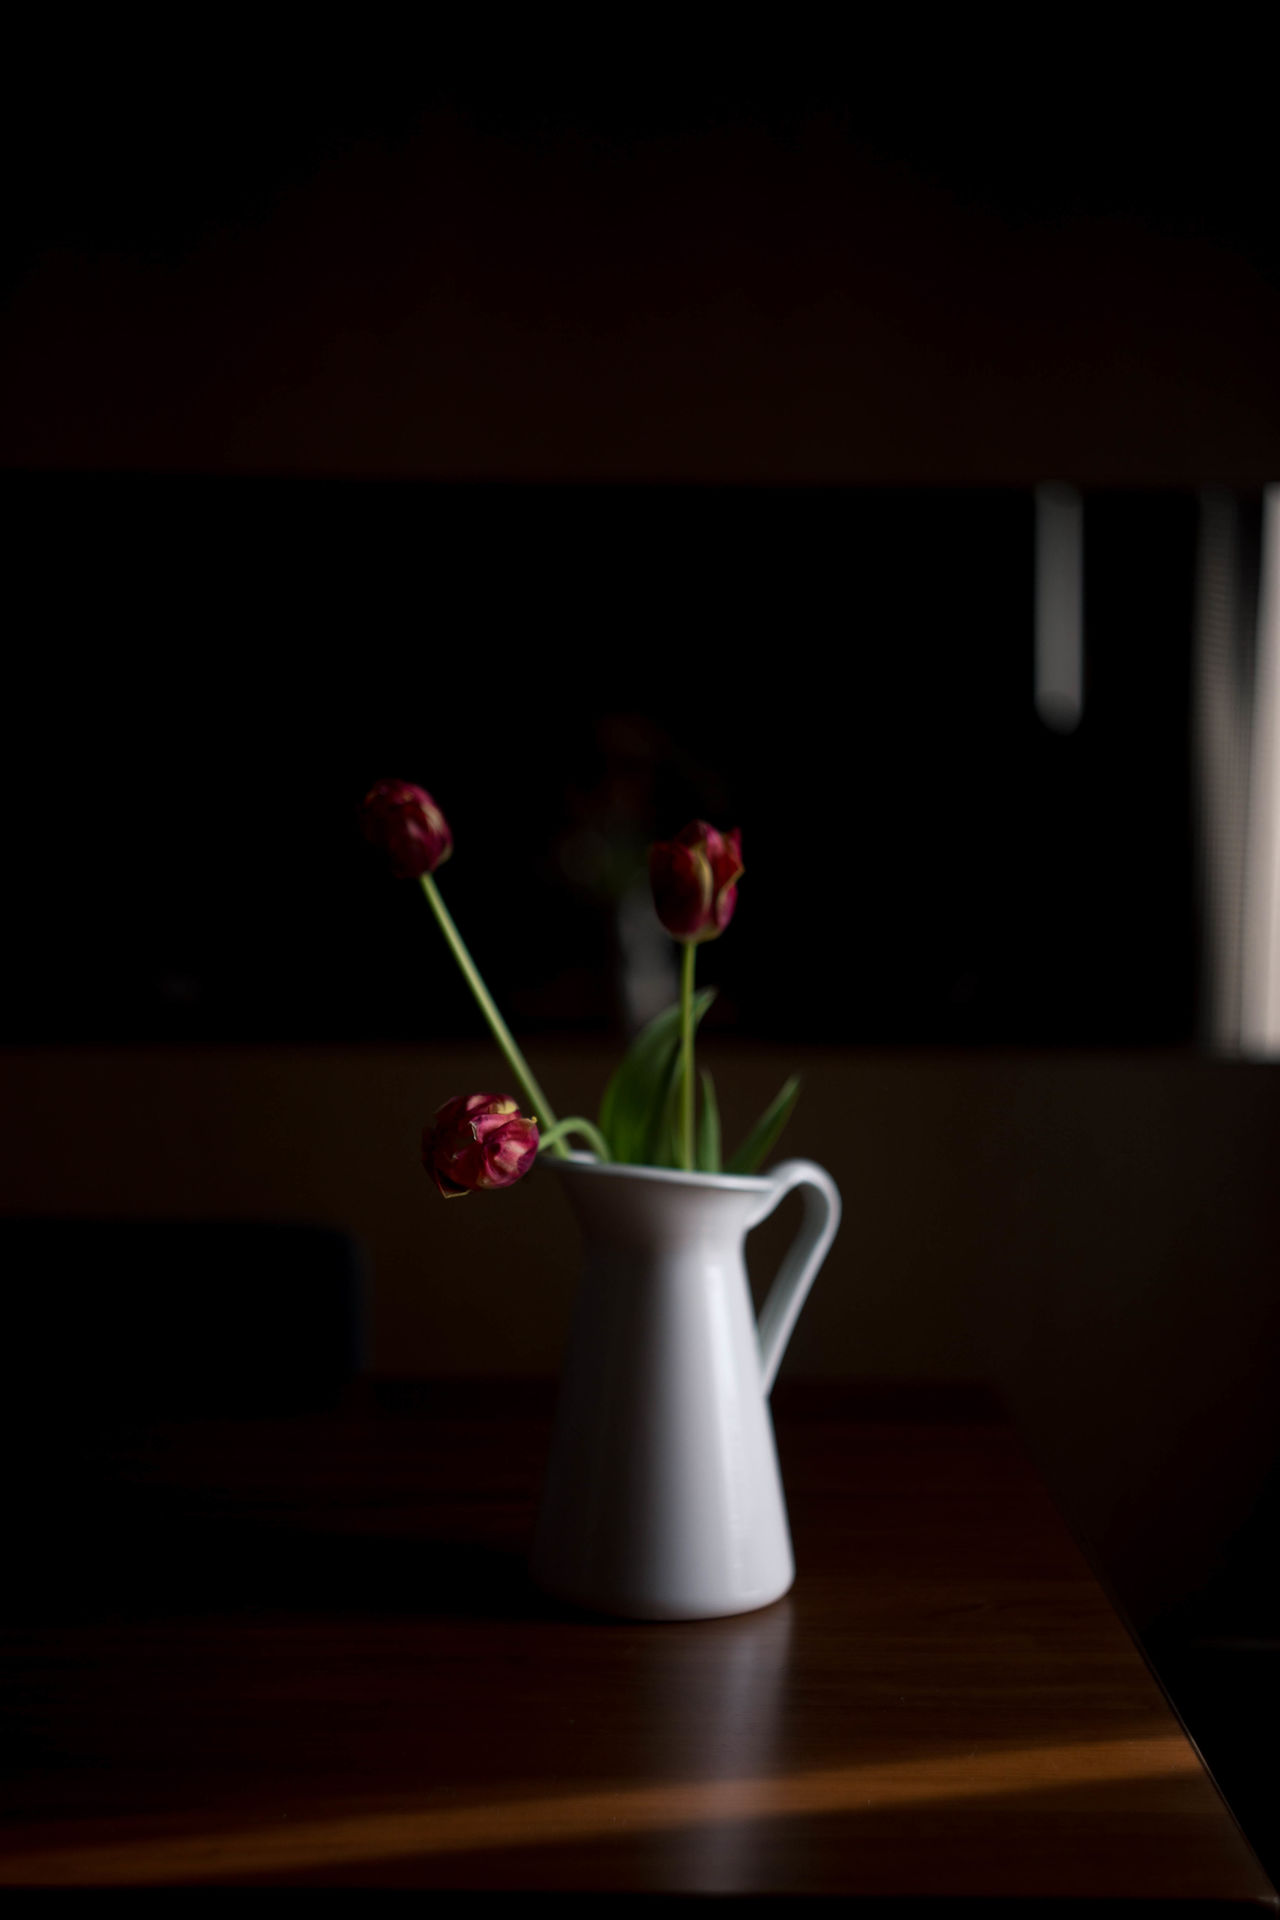 Black Background Blossom Close-up Day Detail Flower Flower Head Flowers Freshness Home Indoors  Interior Kinfolk Lifestyles Nature No People Table Tulips Vase